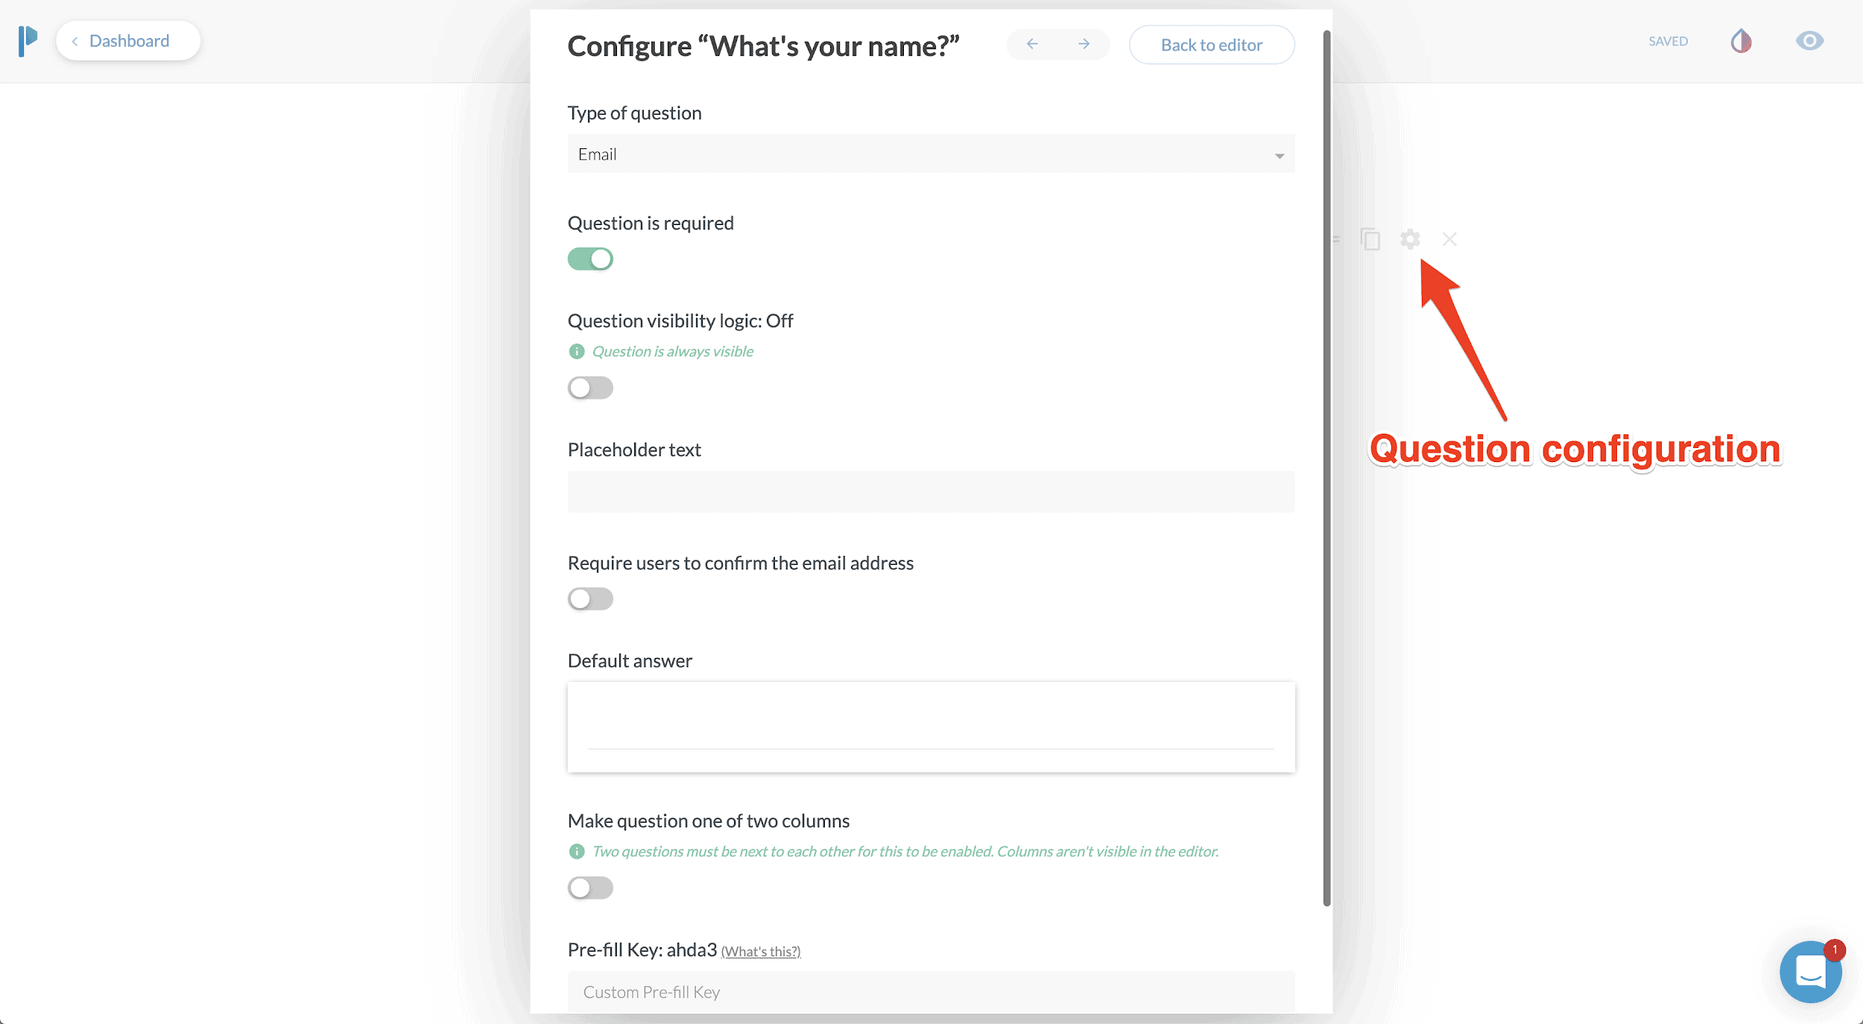 Configuring  questions